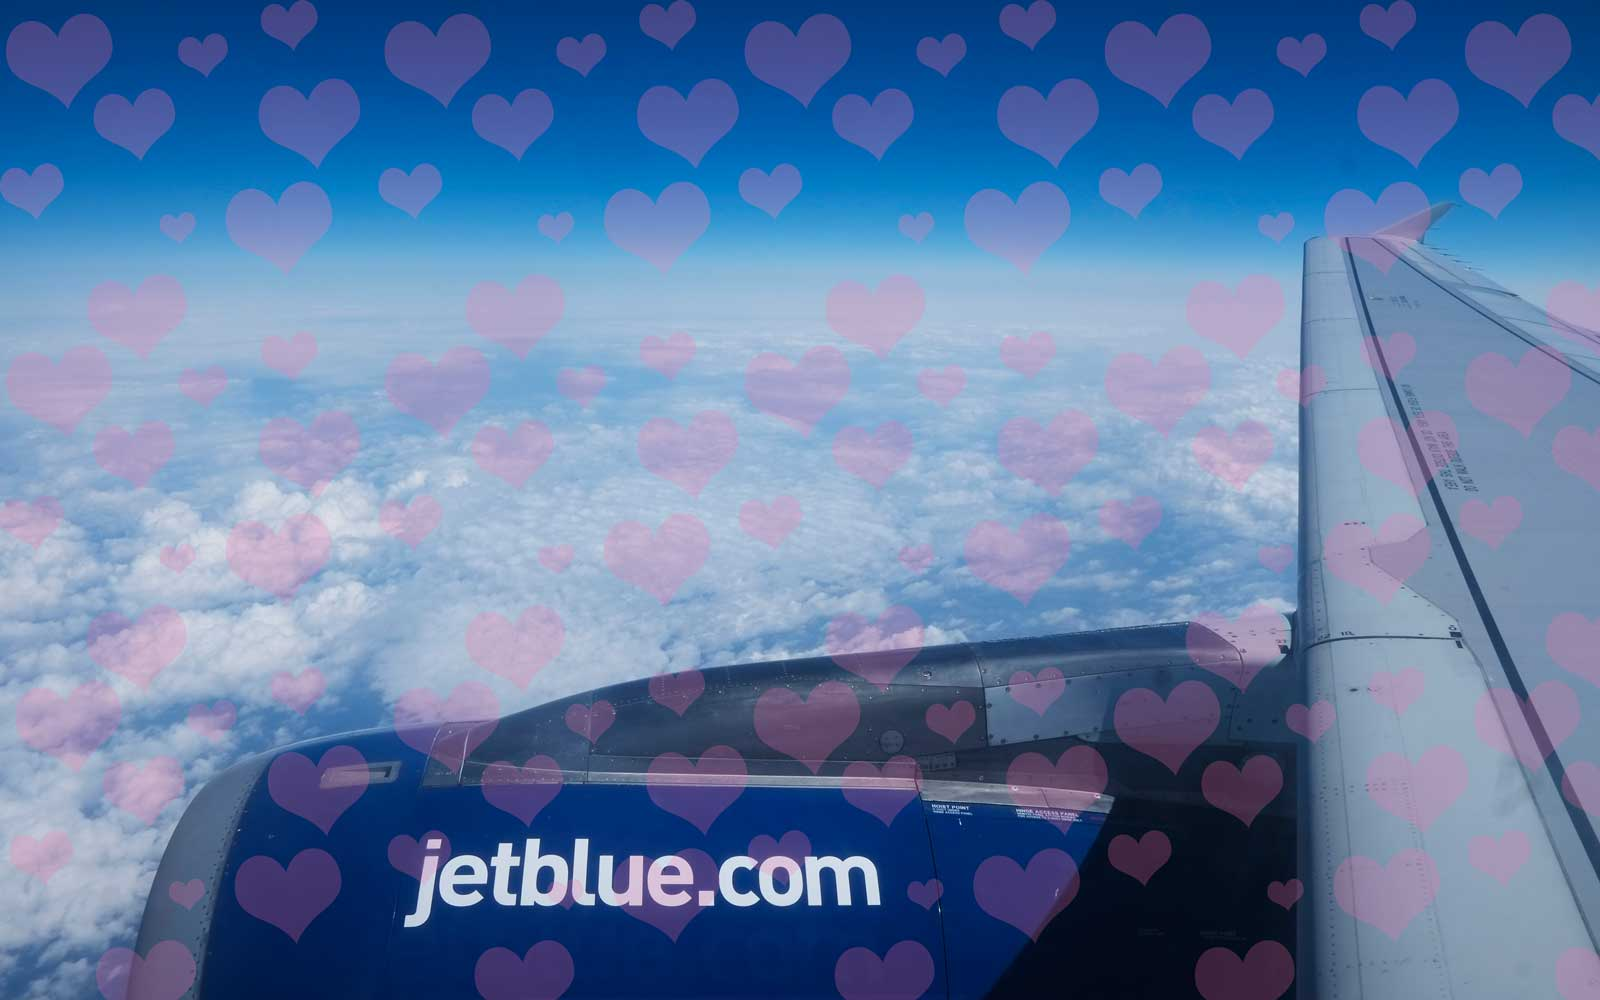 JetBlue Is Selling $39 Flights for Valentine's Day